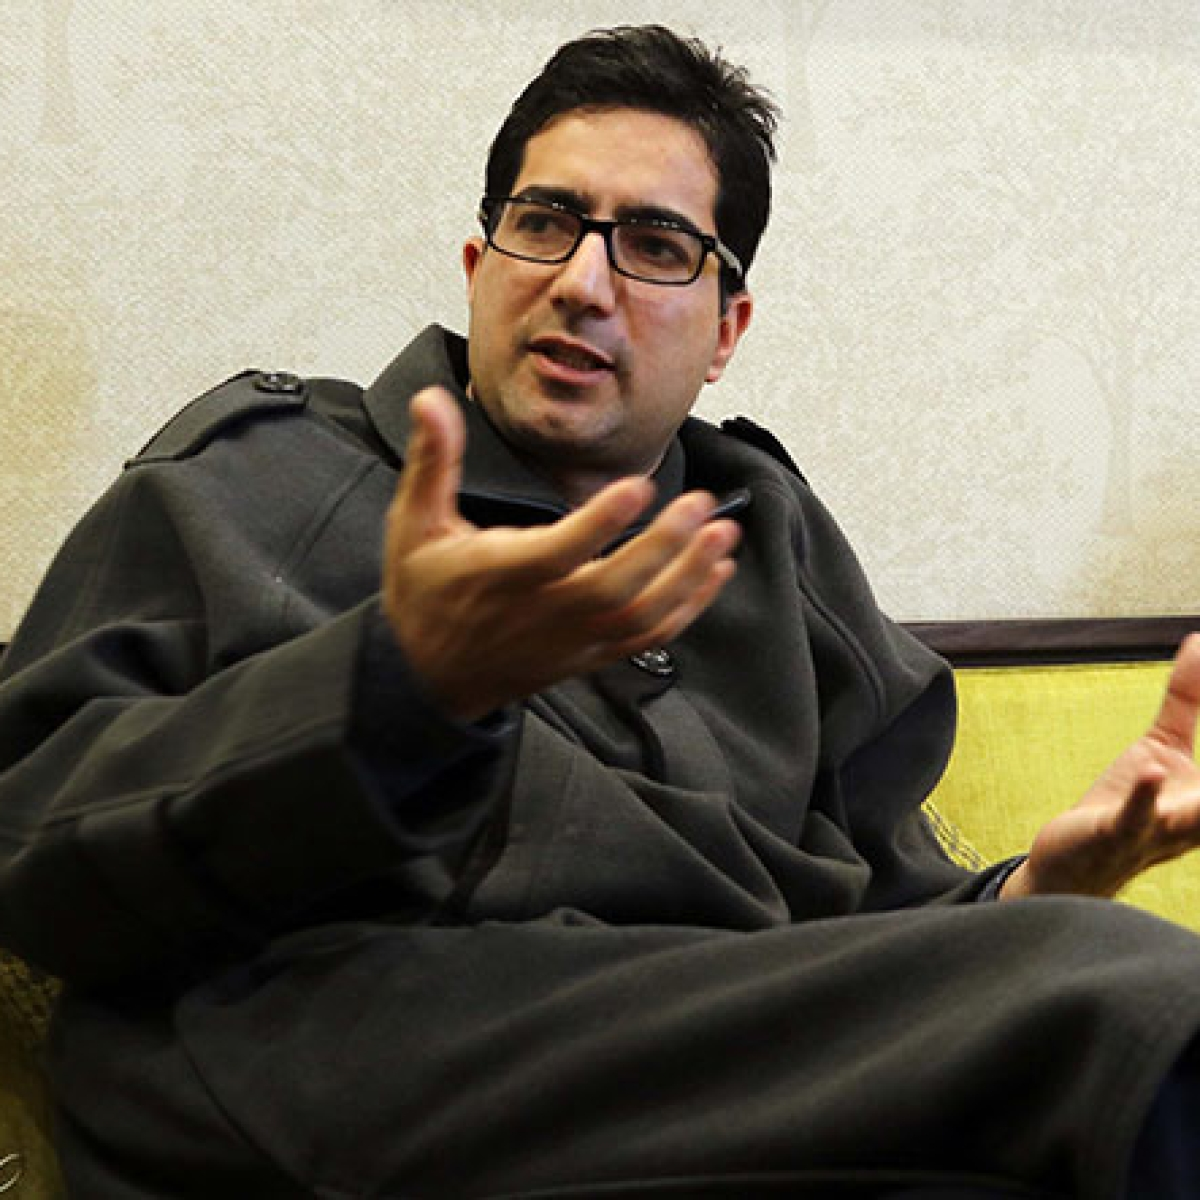 PSA against Shah Faesal revoked, Omar slams J&K administration for continuing to detain Mehbooba Mufti